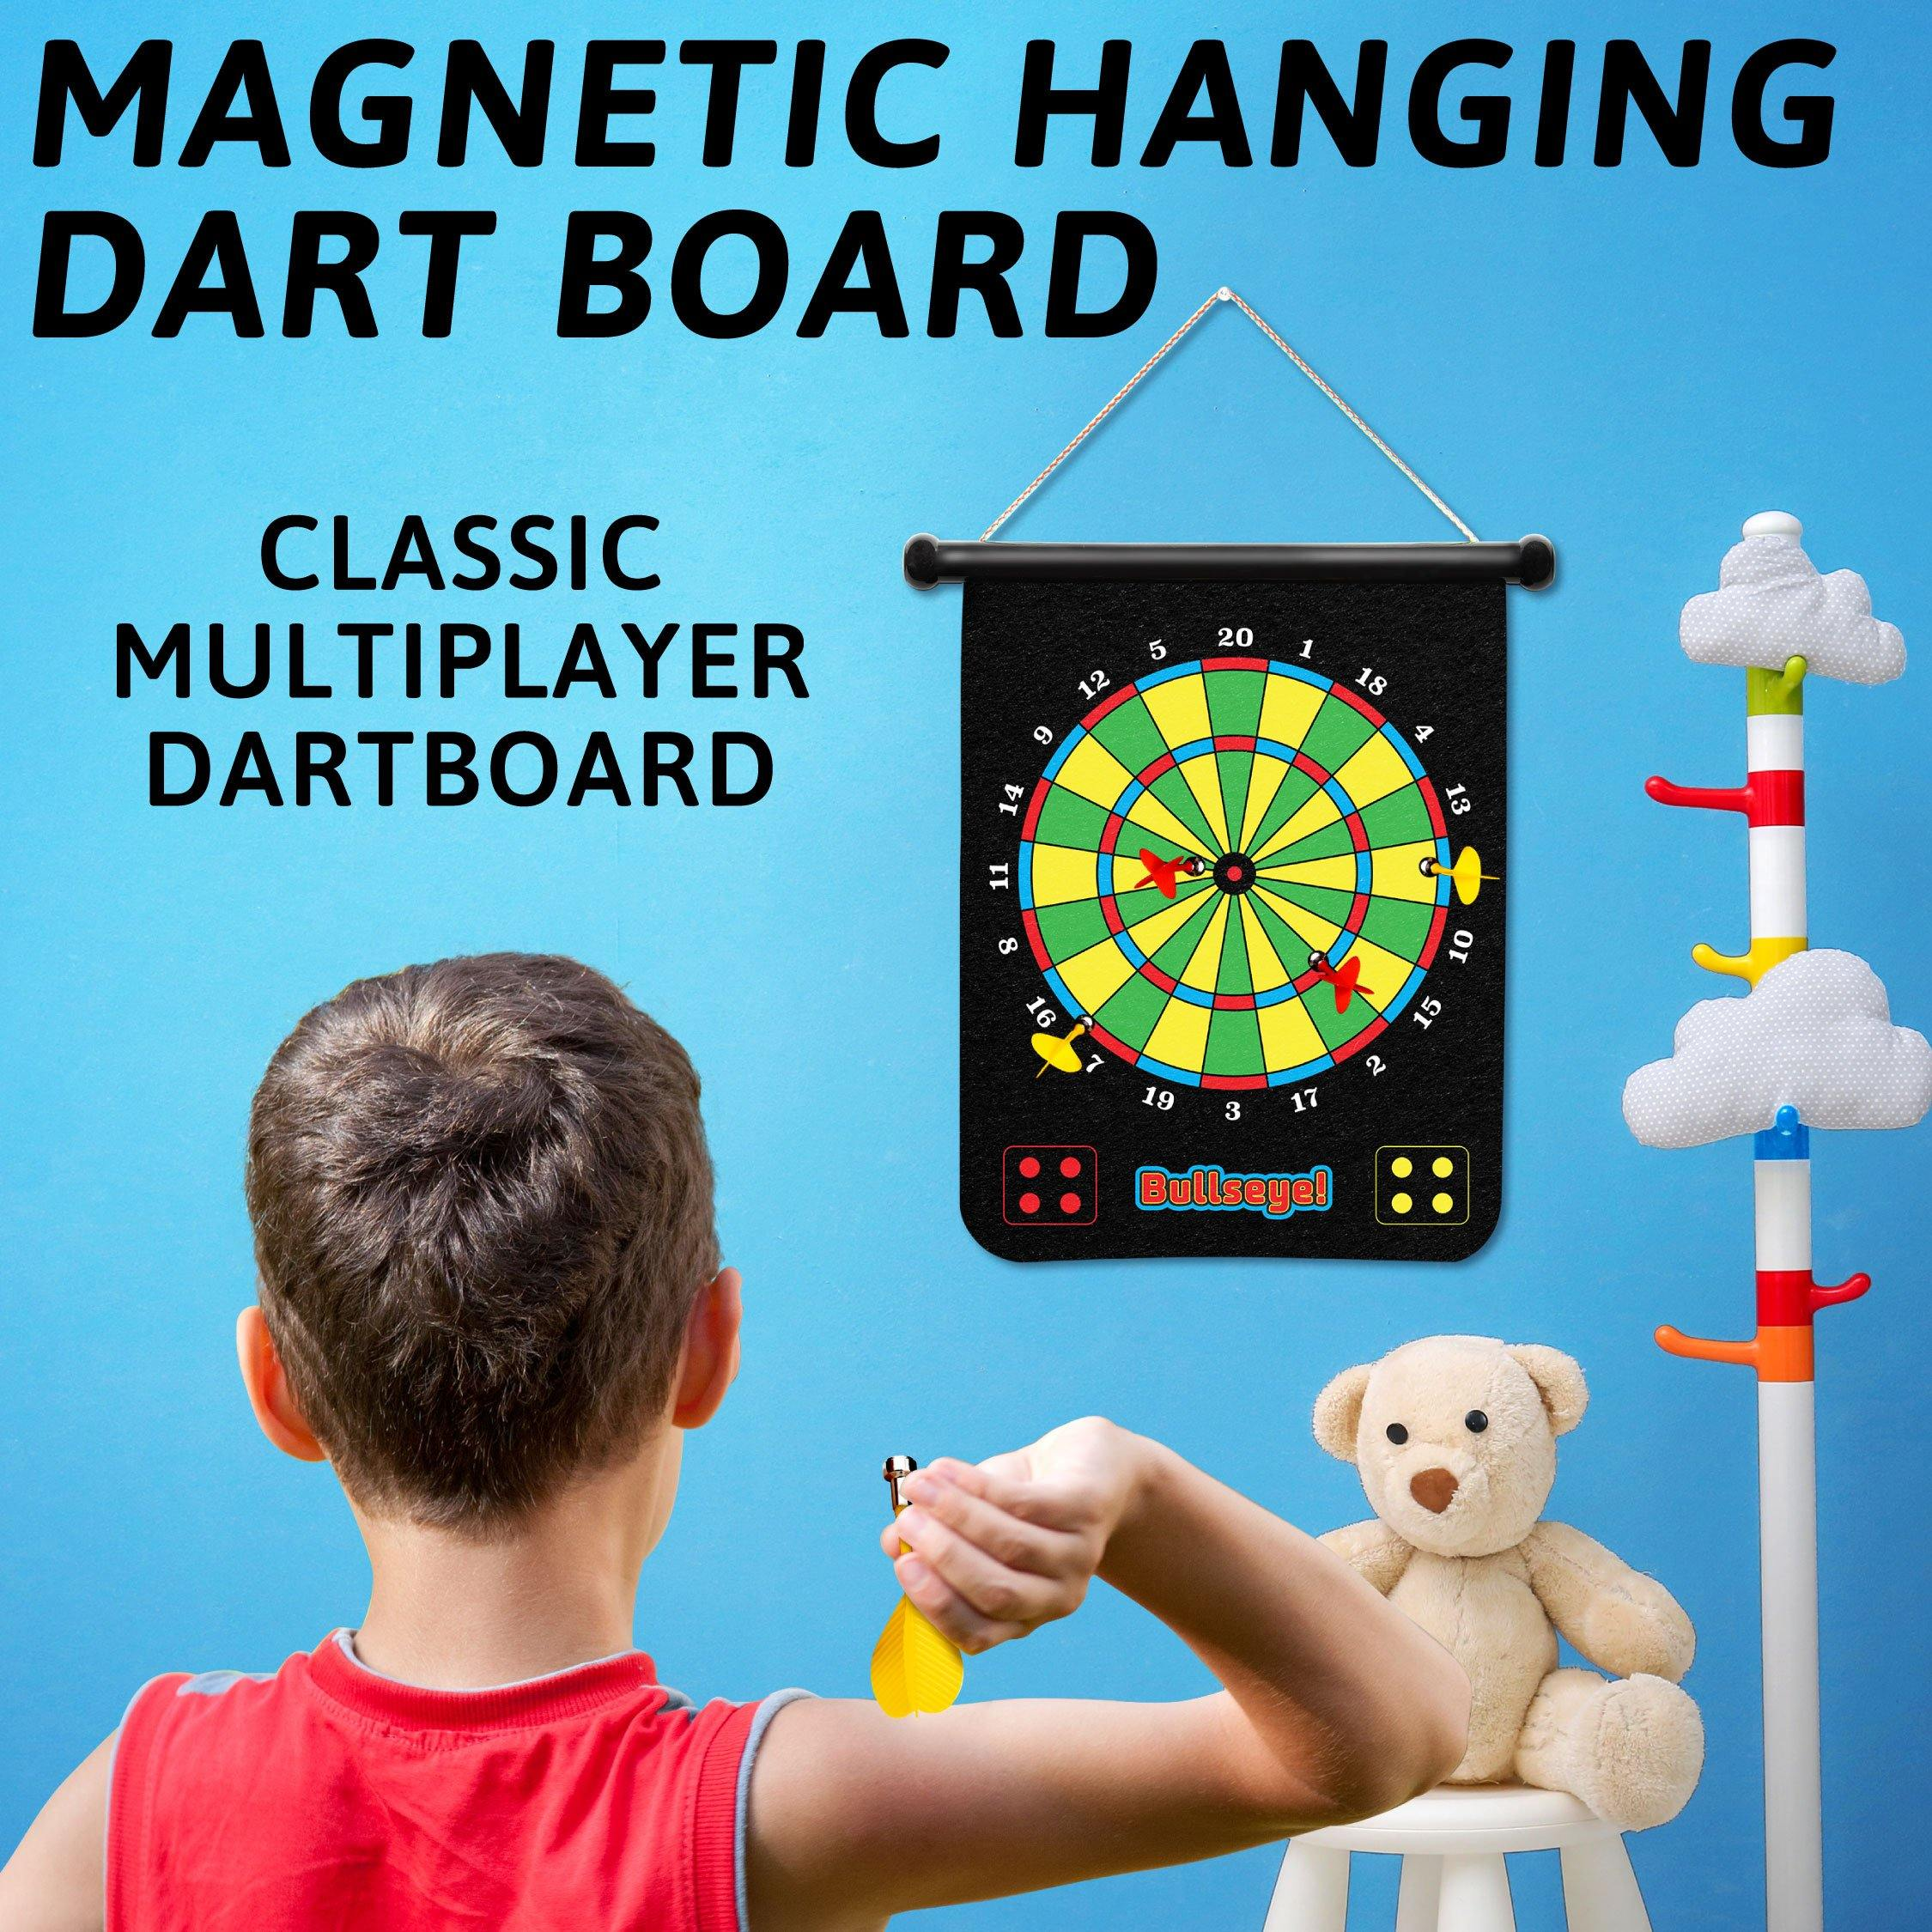 Double-Sided Roll Up Dartboard with Magnetic Darts and Balls